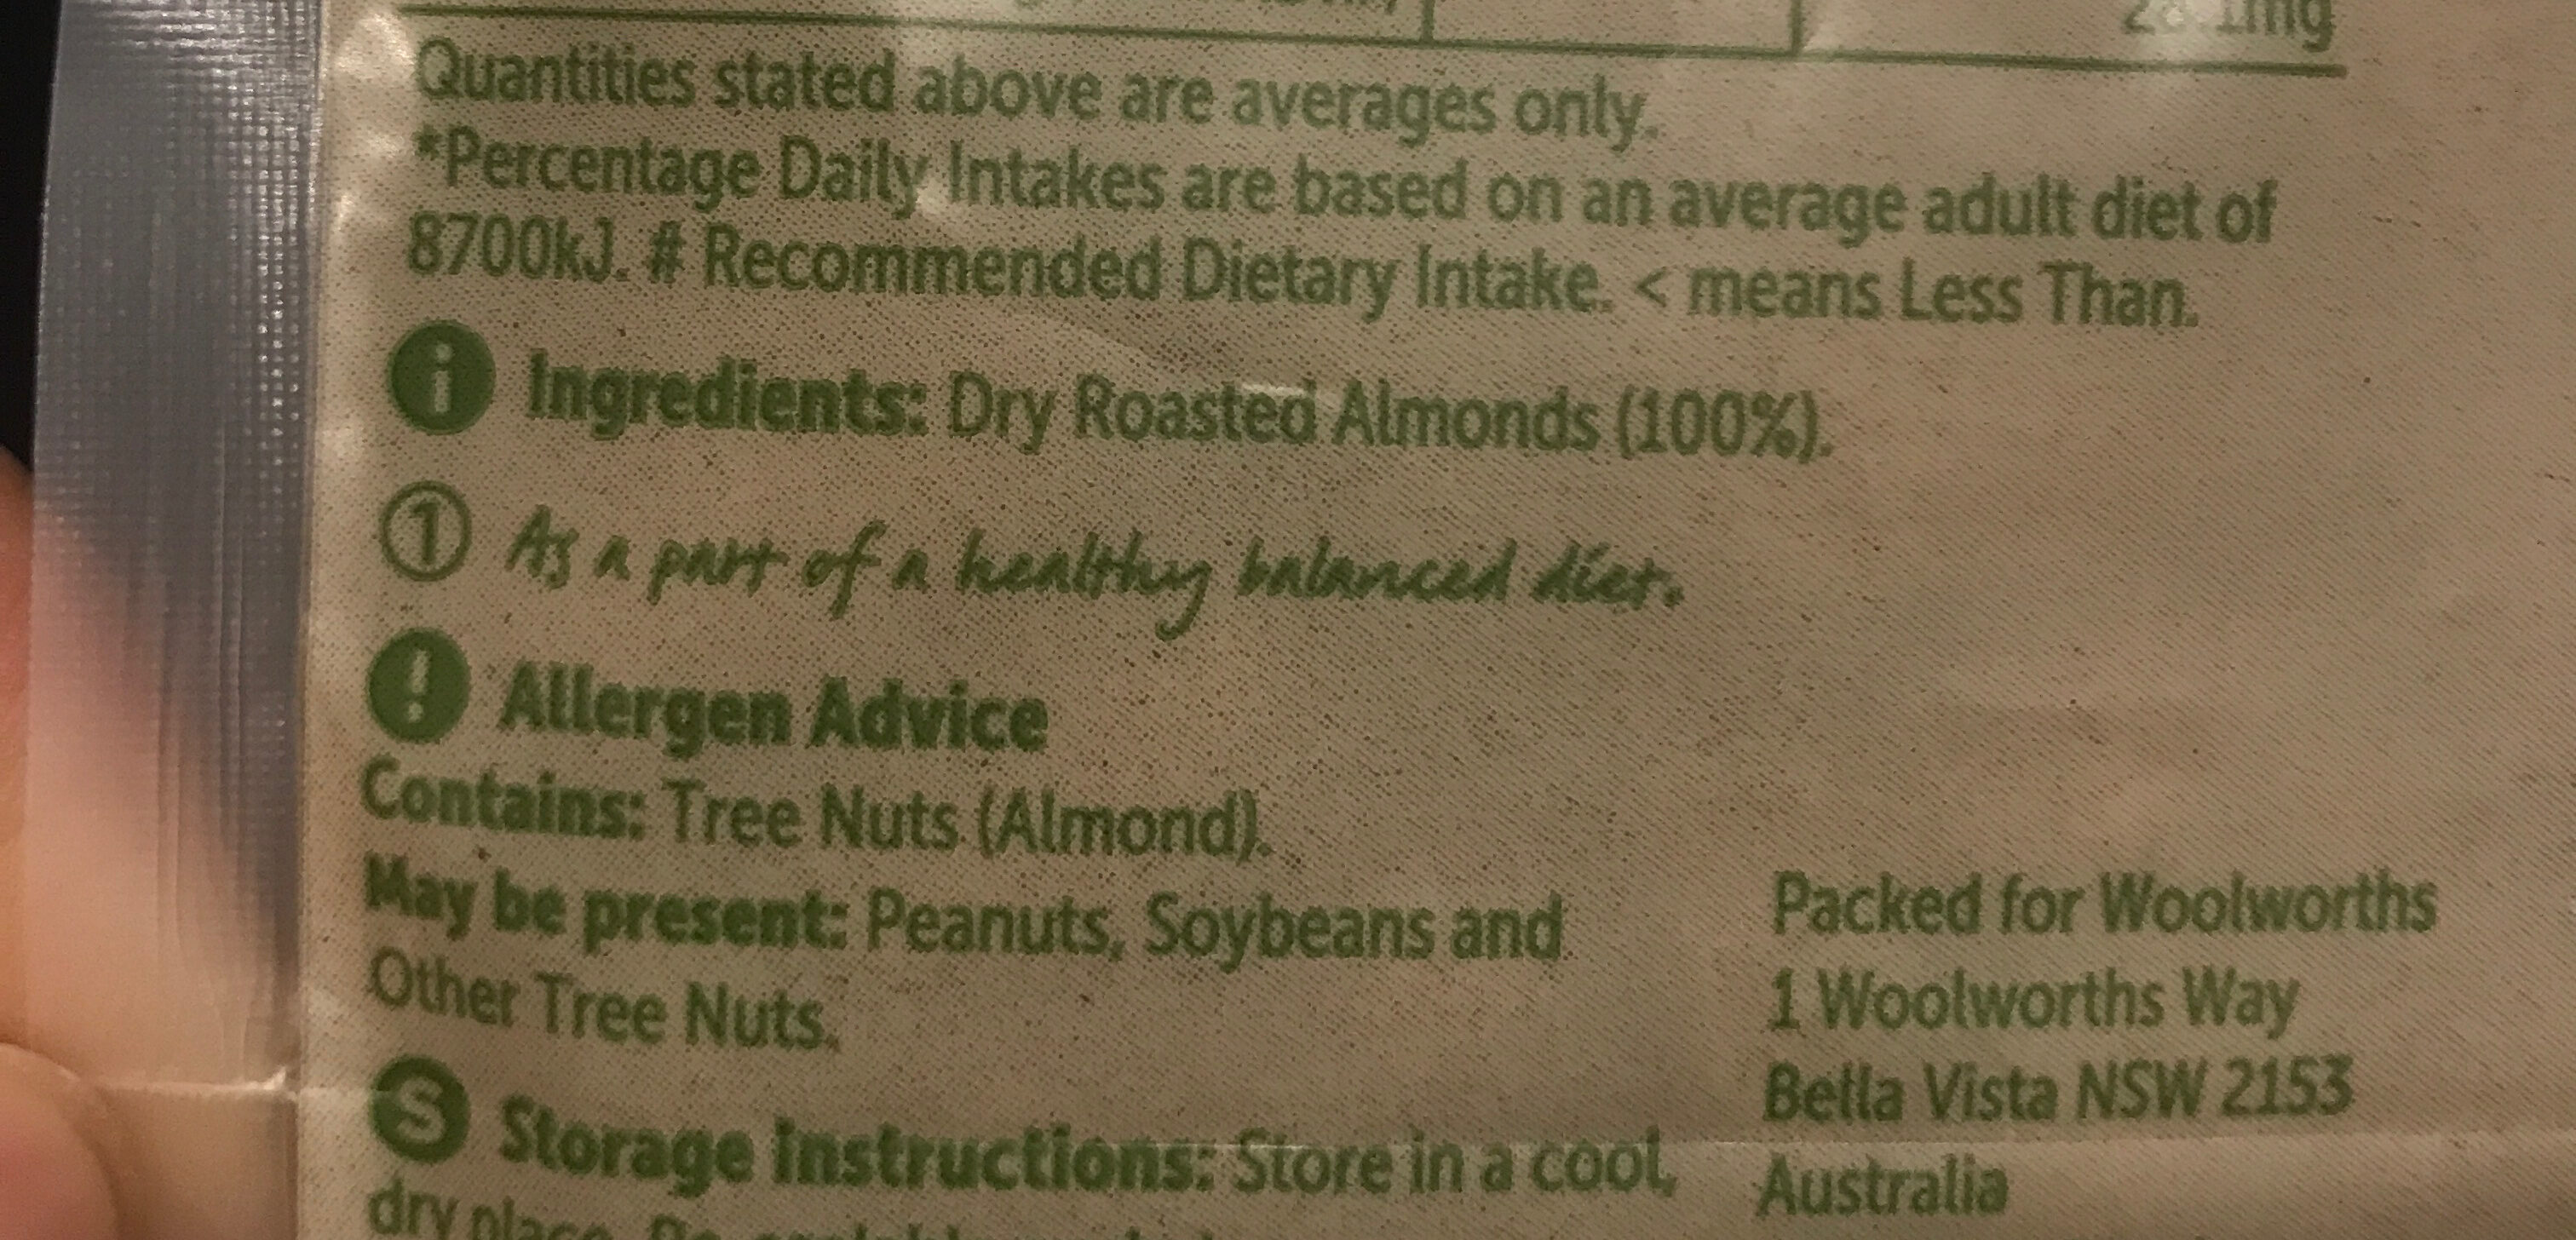 Dry roasted almonds - Ingredients